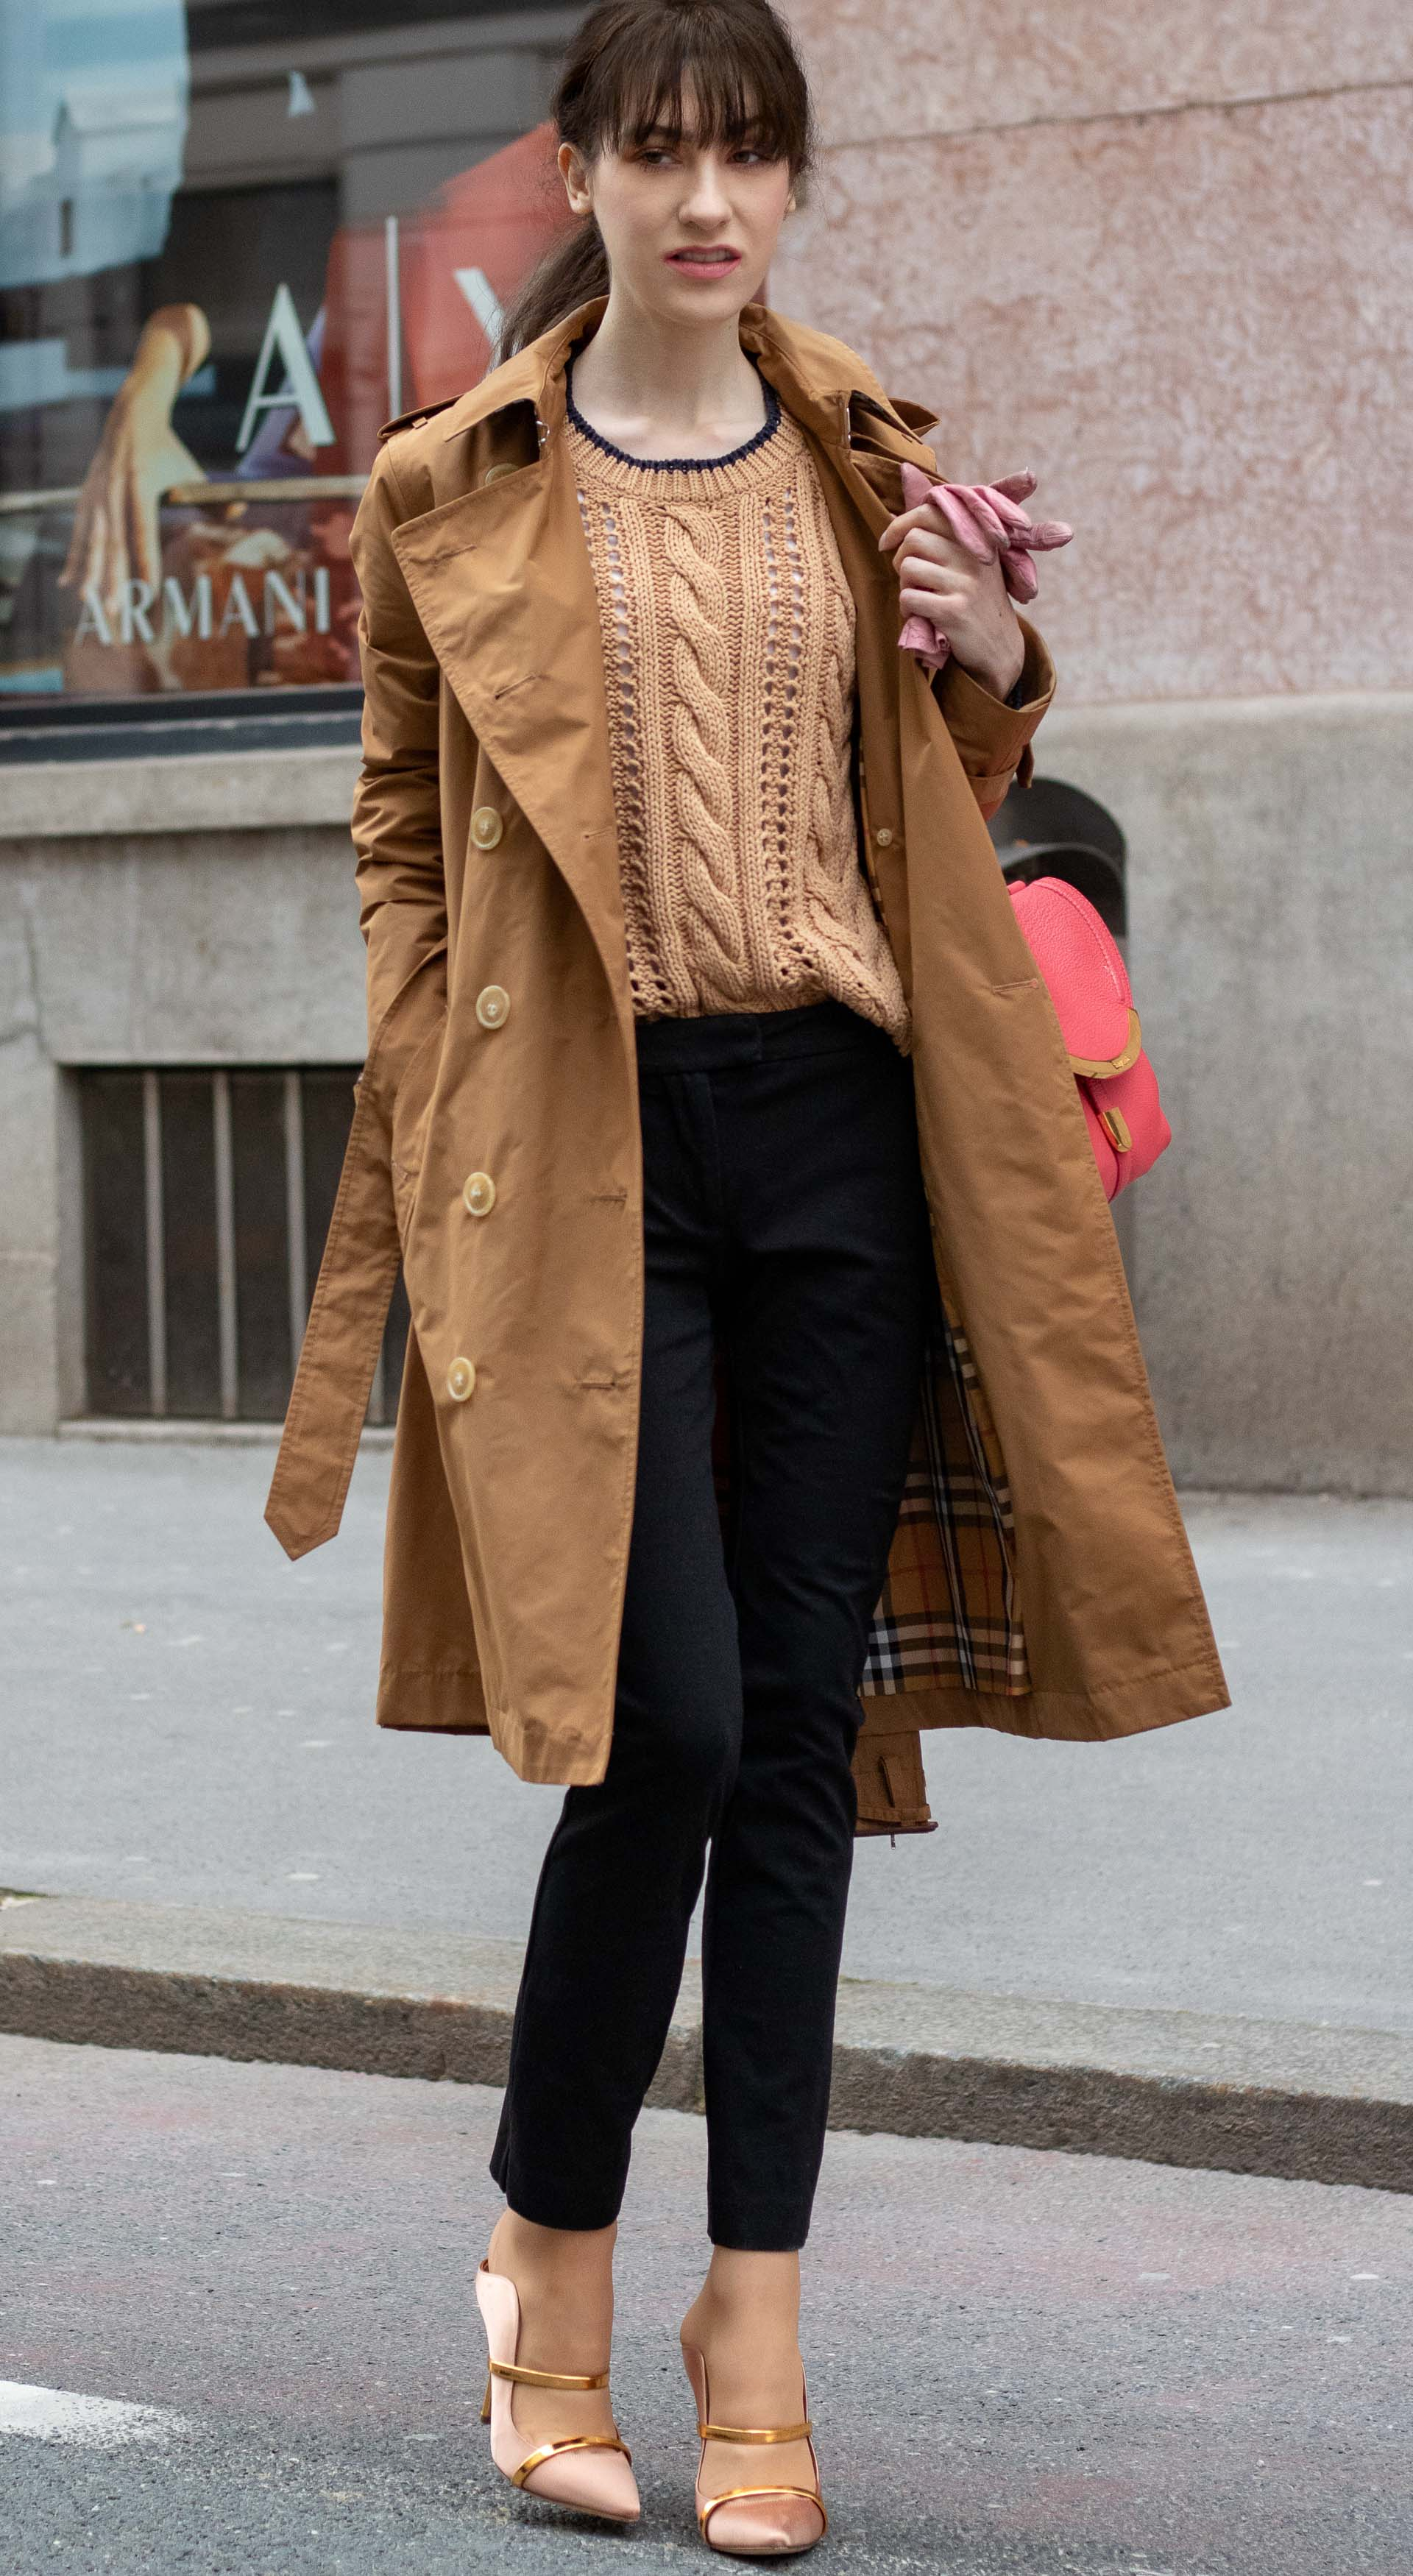 Must follow Slovenian Fashion Blogger Veronika Lipar of Brunette from Wall Street dressed in camel Burberry trench coat Mango cable knit sweater black slacks blush Malone Souliers mules pink top handle bag low ponytail bangs going to the office